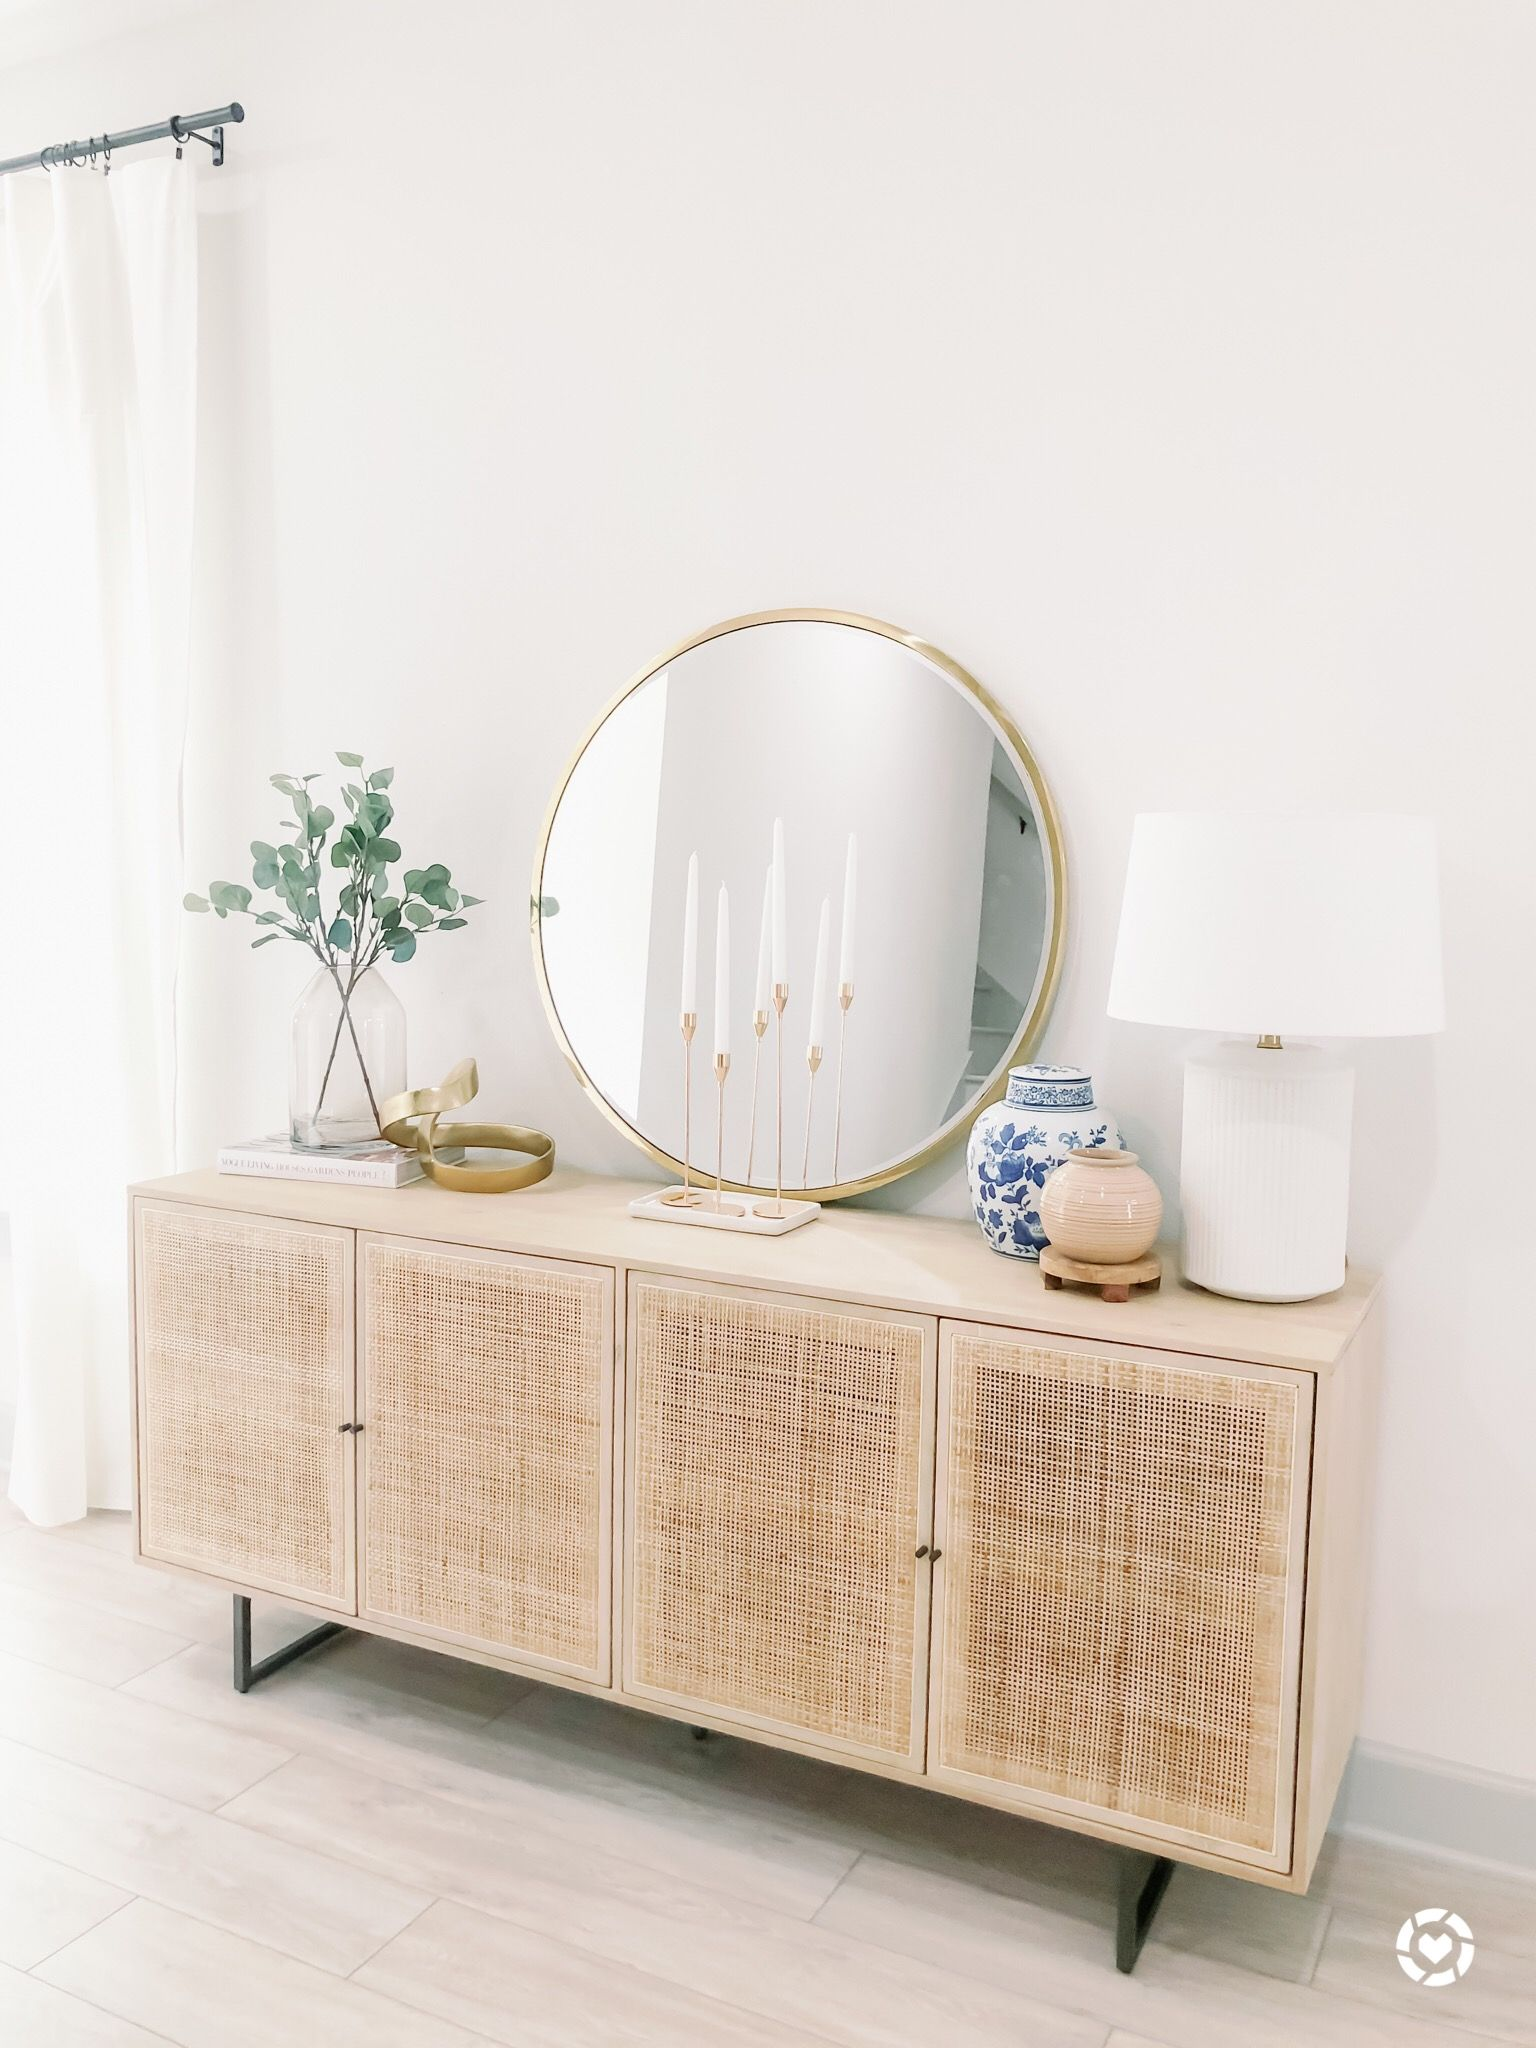 Rattan Sideboards In The Entryway Are Always A Good Idea In